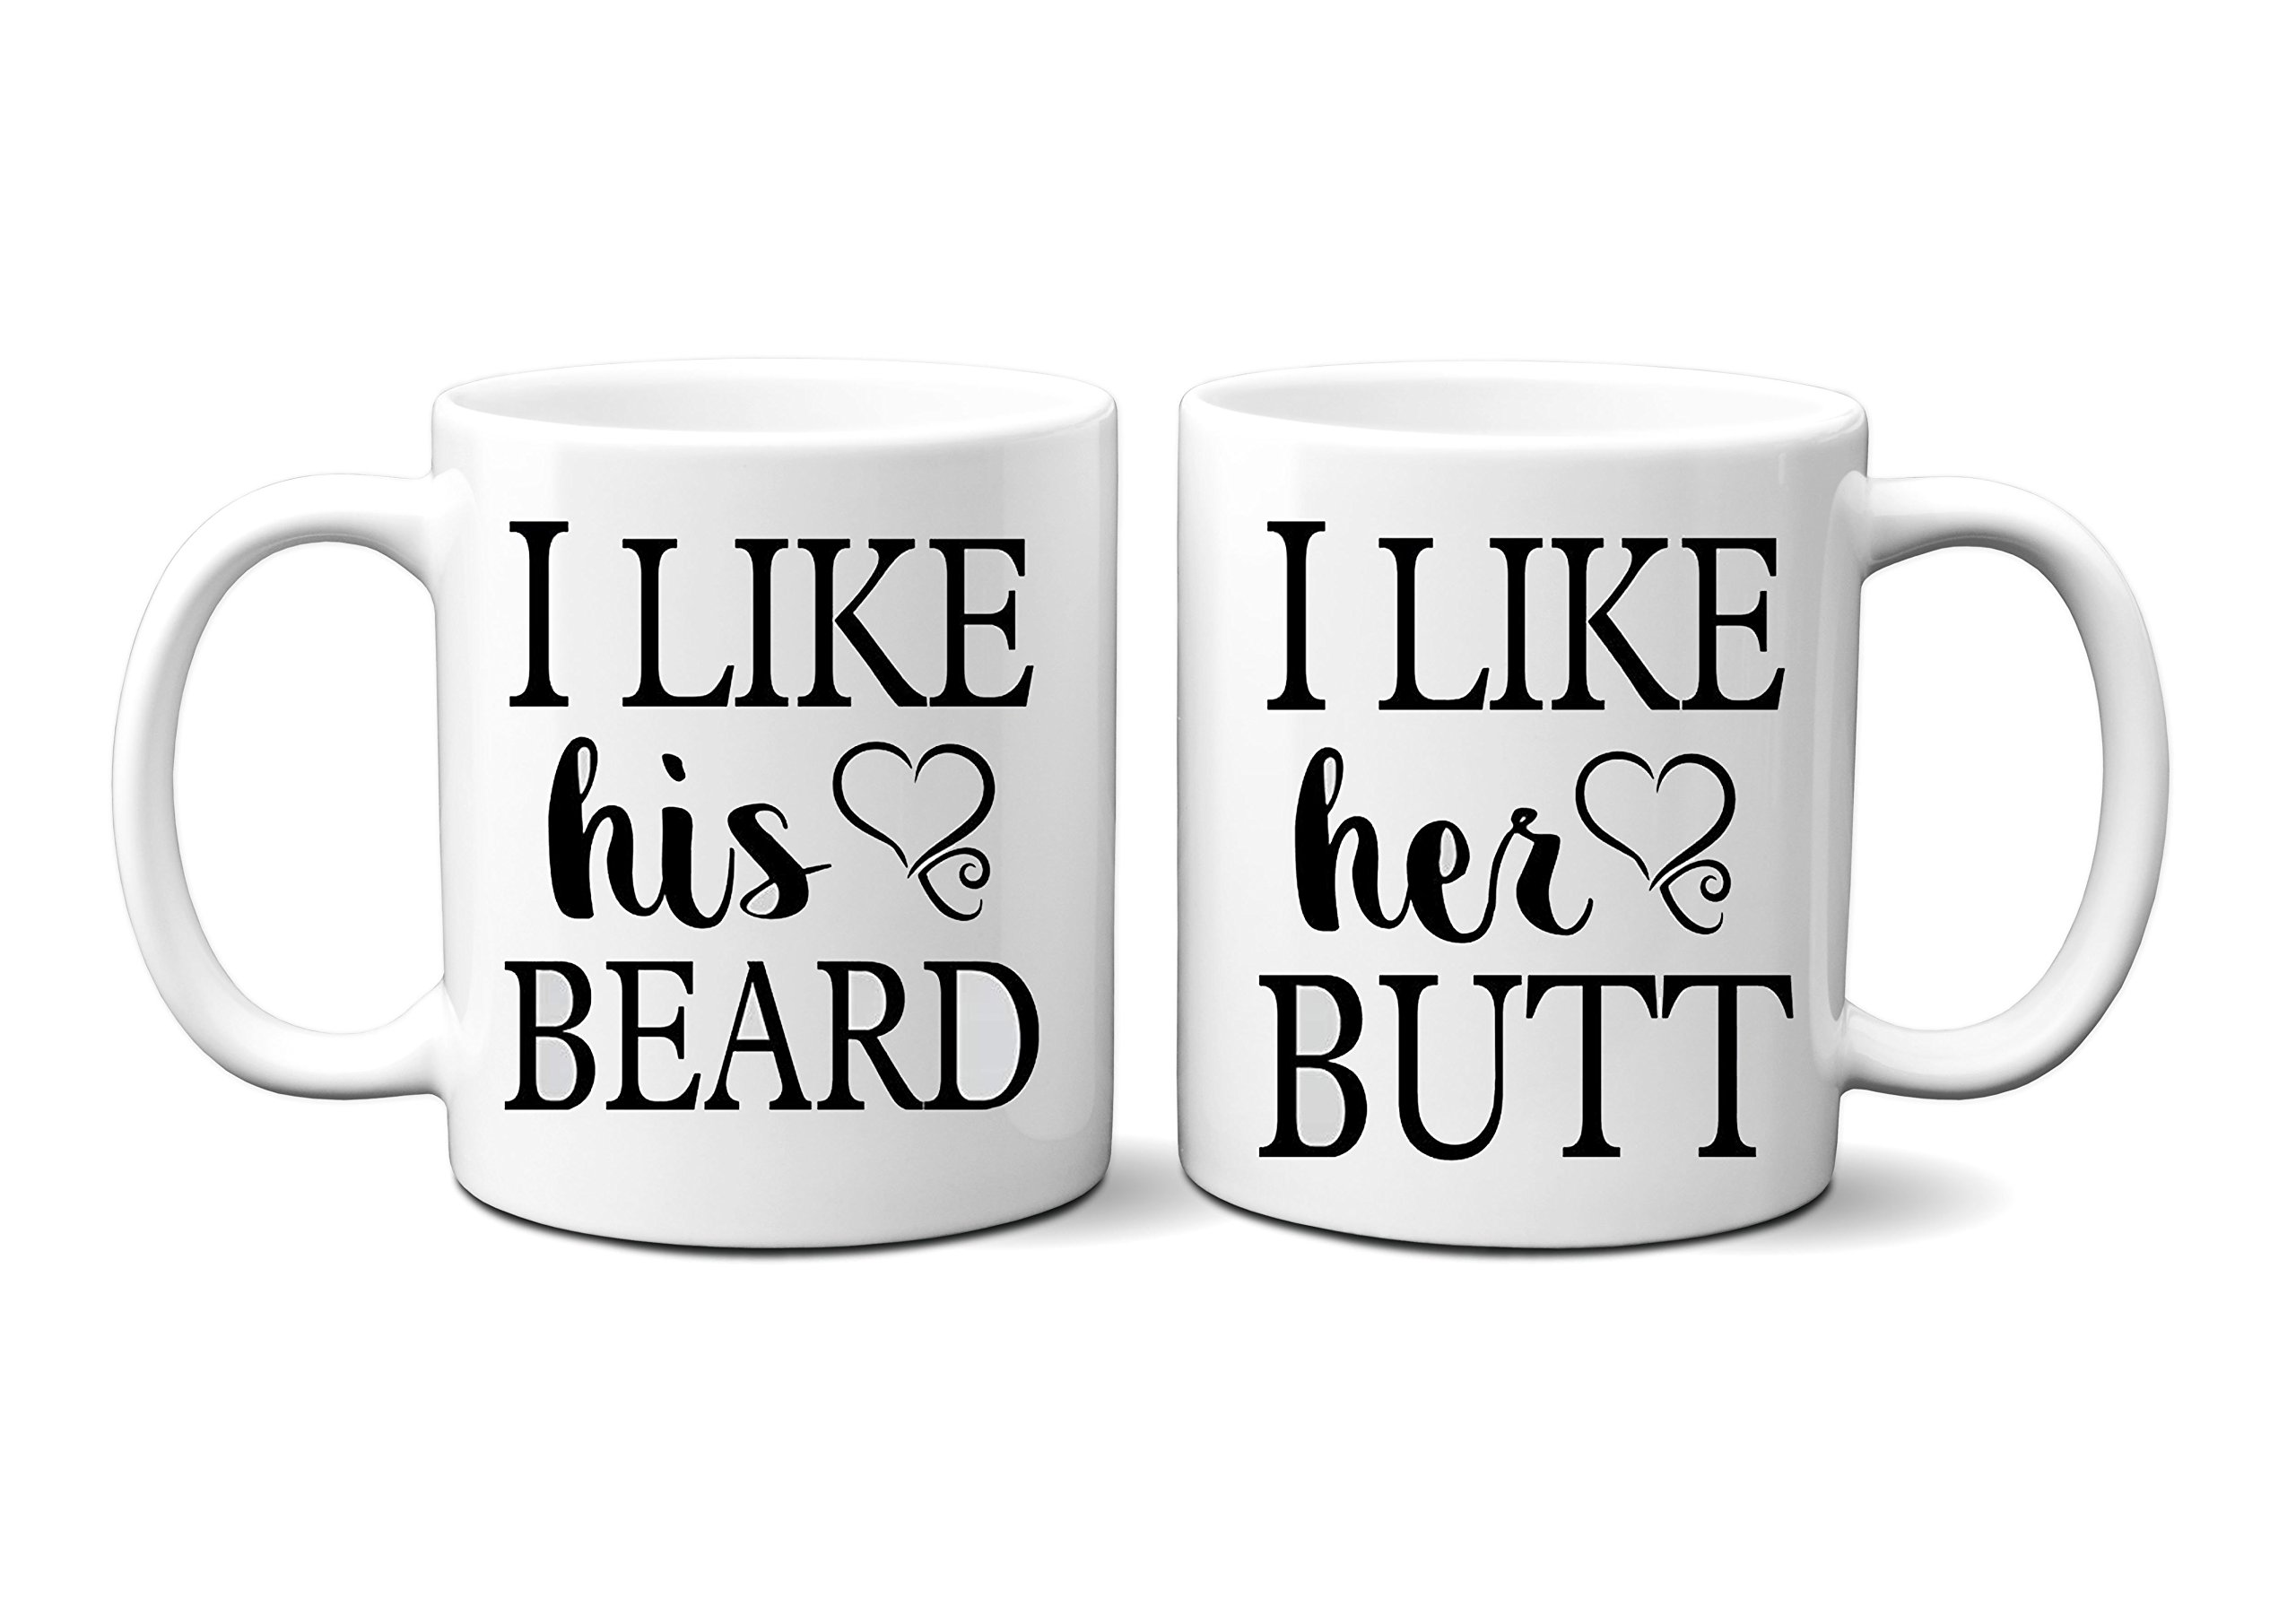 I Like His Beard, I Like Her Butt Couples Mug | Boyfriend Girlfriend Soul Mates Love White Ceramic 11 Oz Mug Set | Great Gift for Boyfriend, Girlfriend, Lovers, Husband and Wife